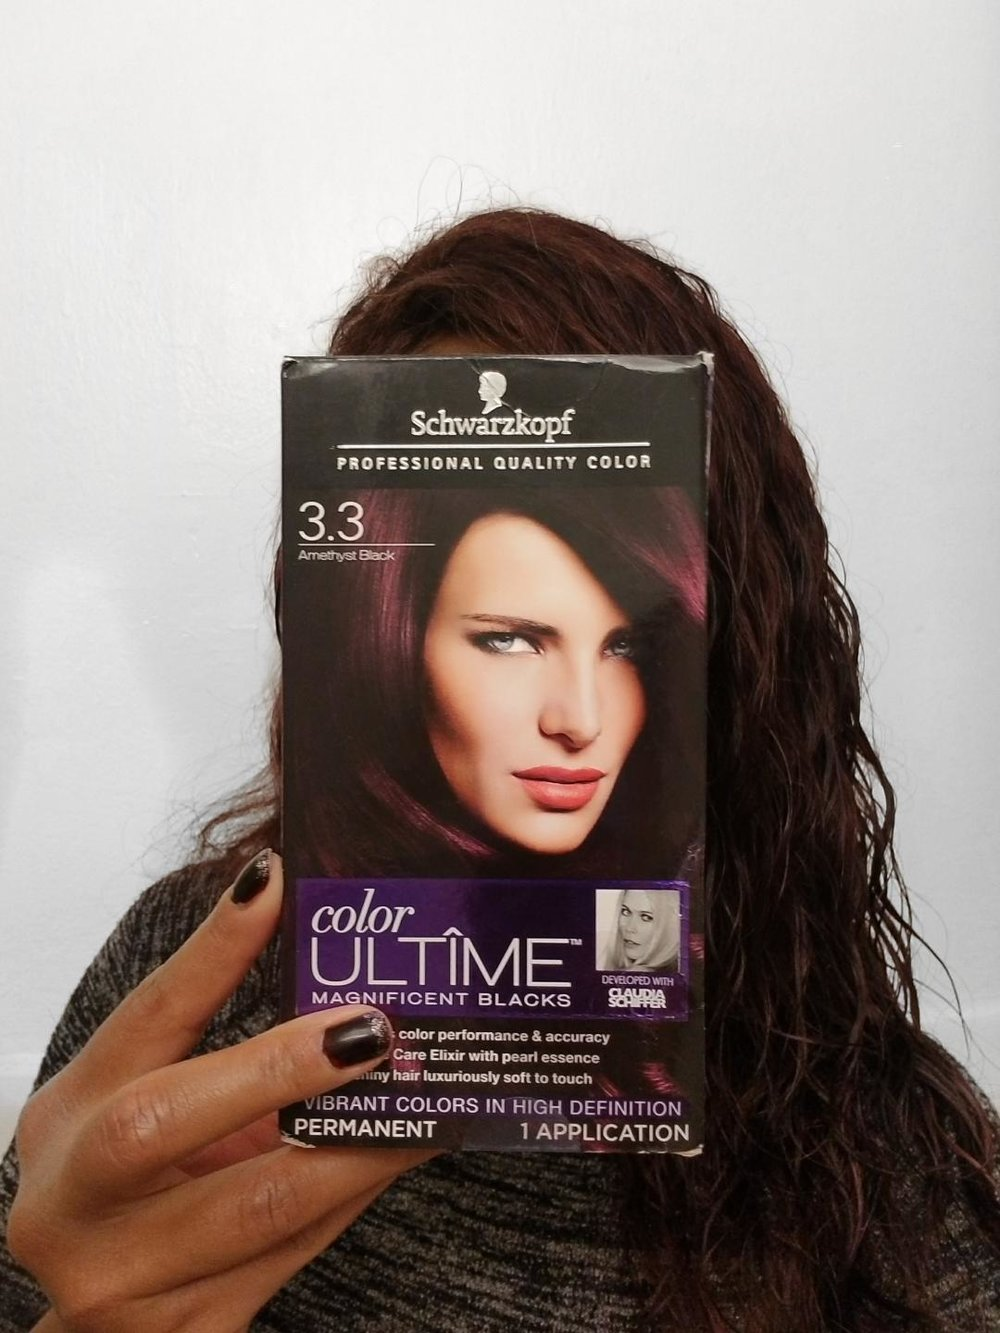 Schwarzkopf Color Ultimate.jpg